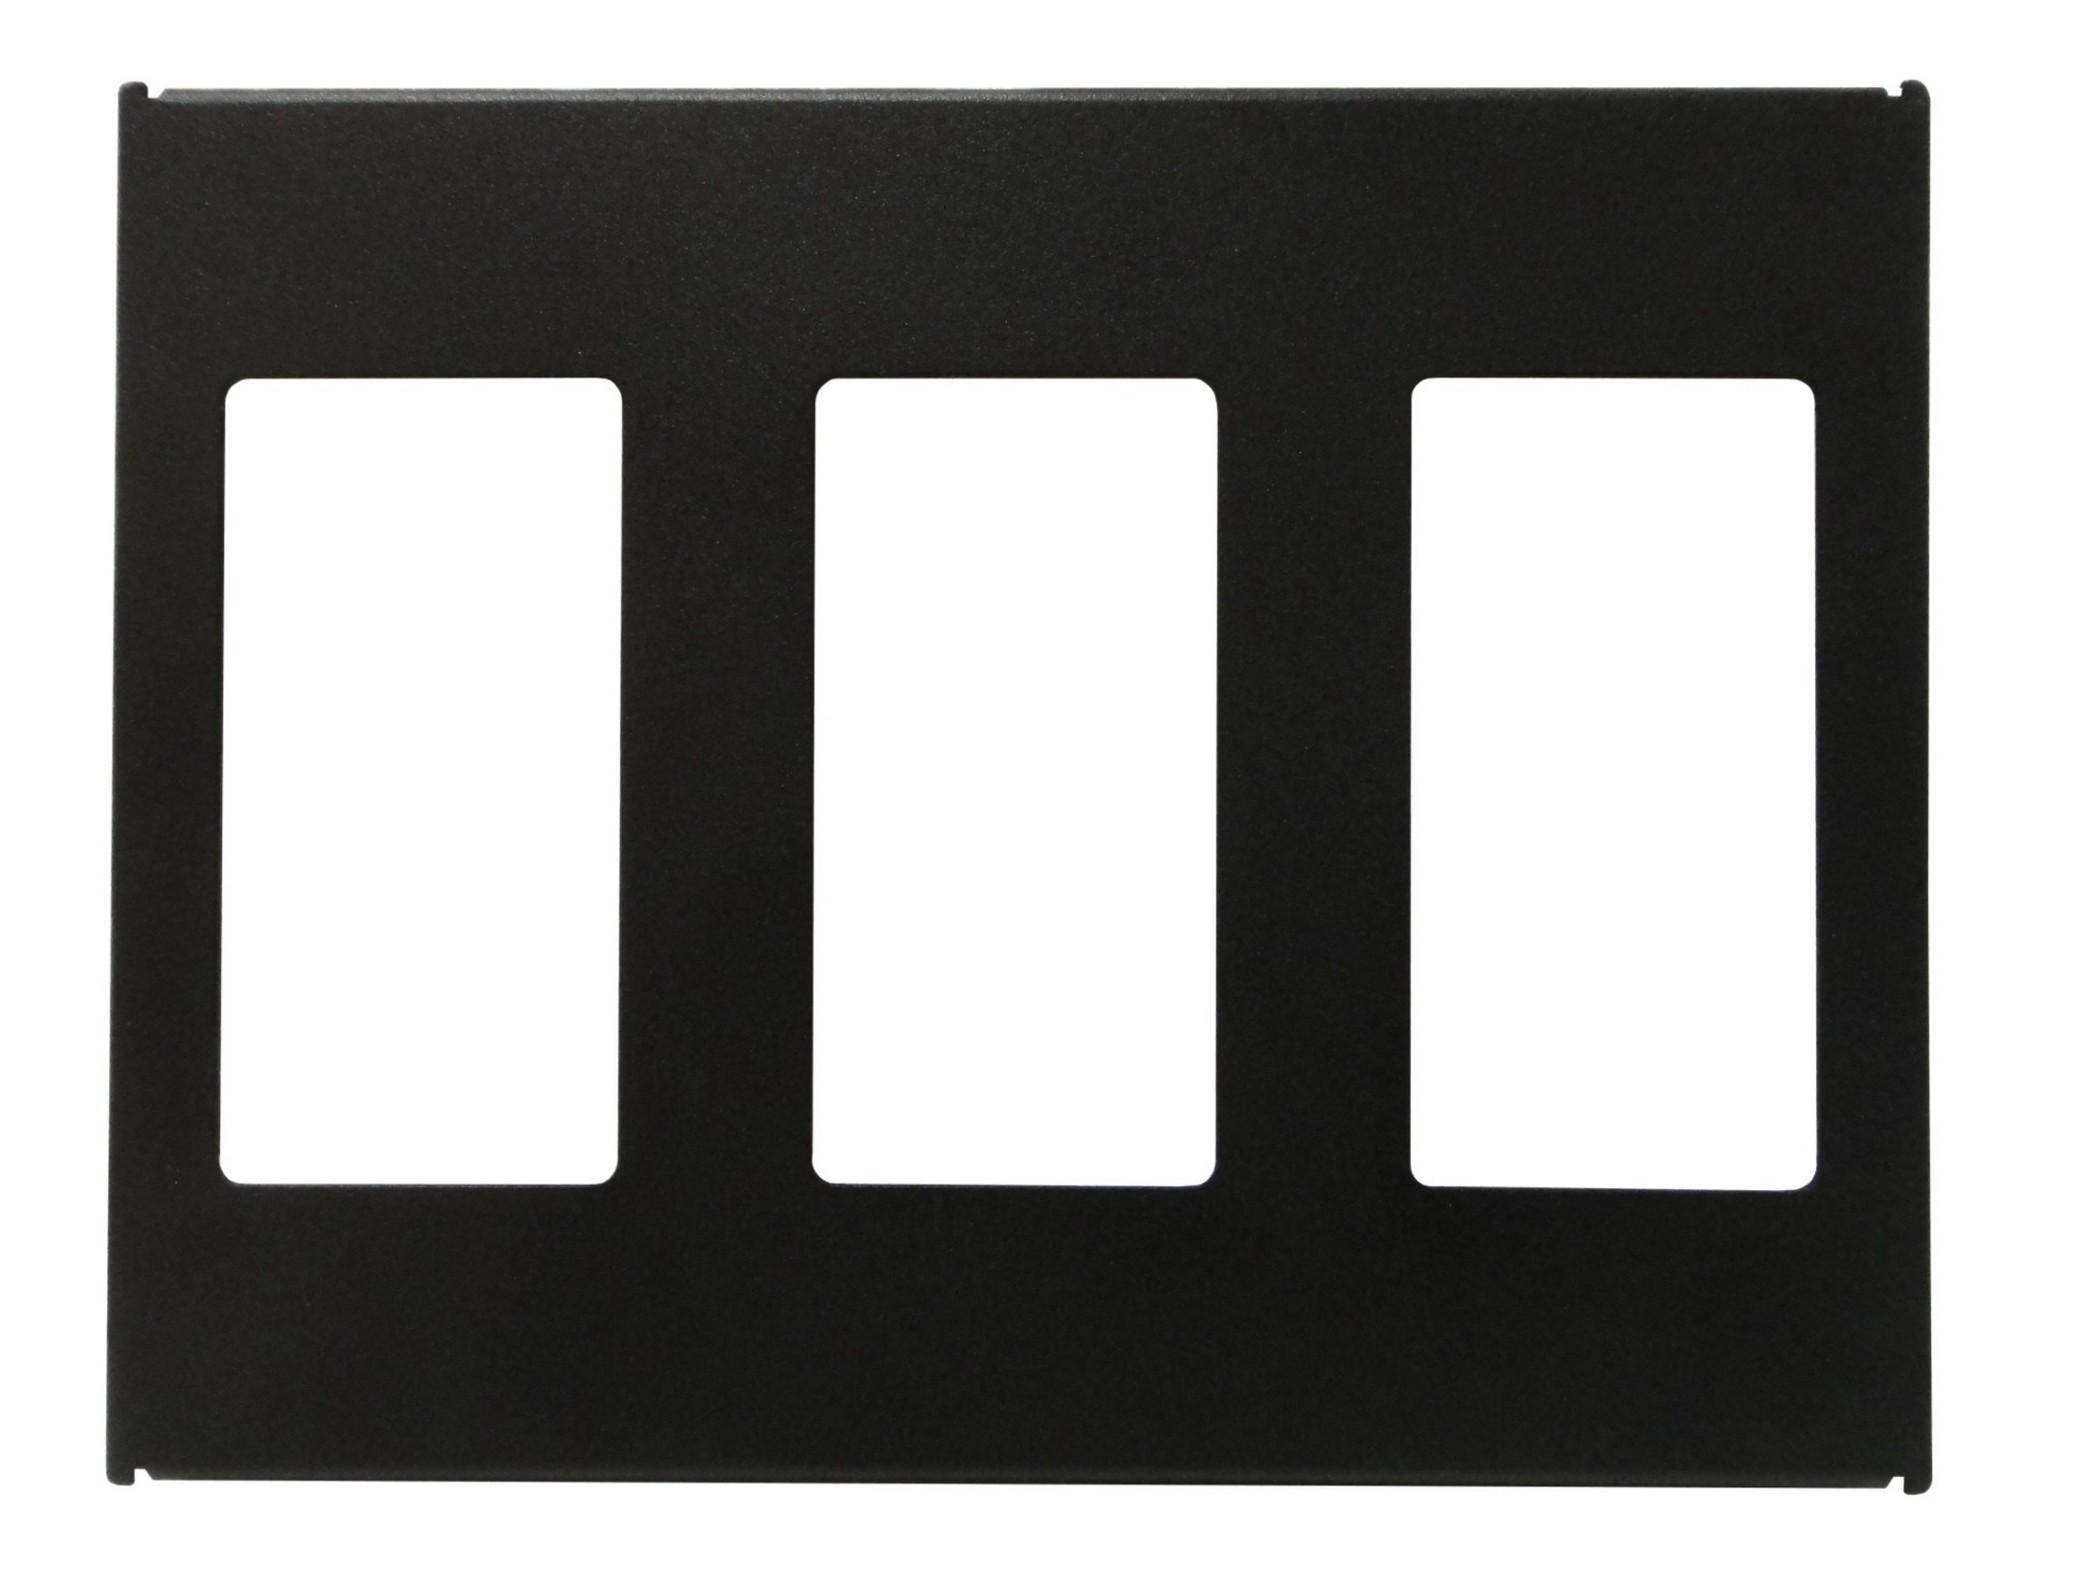 CNK-IP-210 Face Plate For All Cnk-Ip-2Xx by Altinex